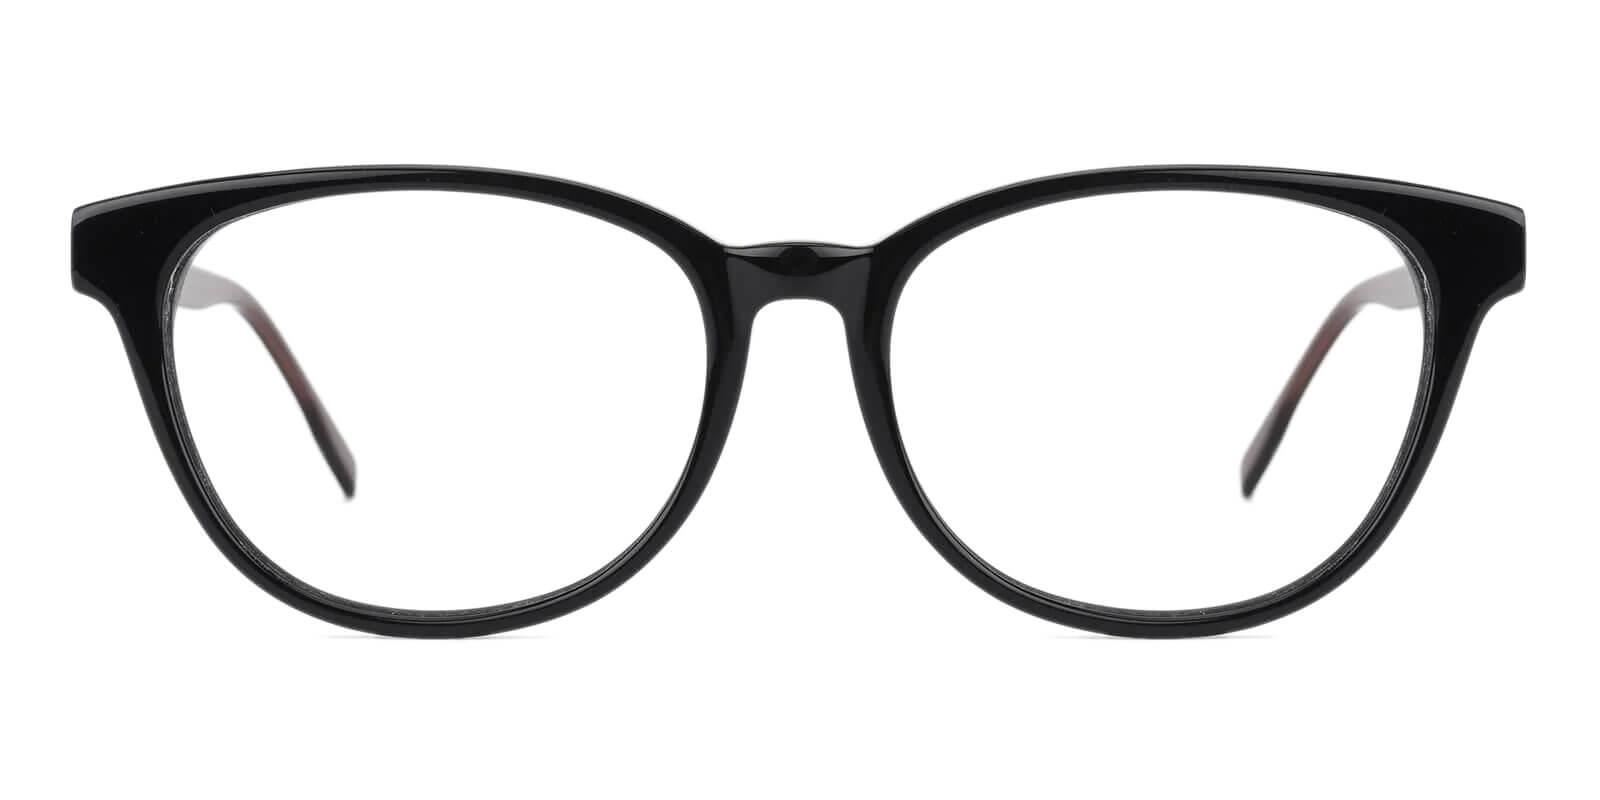 Bouquet Black Acetate Eyeglasses , SpringHinges , UniversalBridgeFit Frames from ABBE Glasses